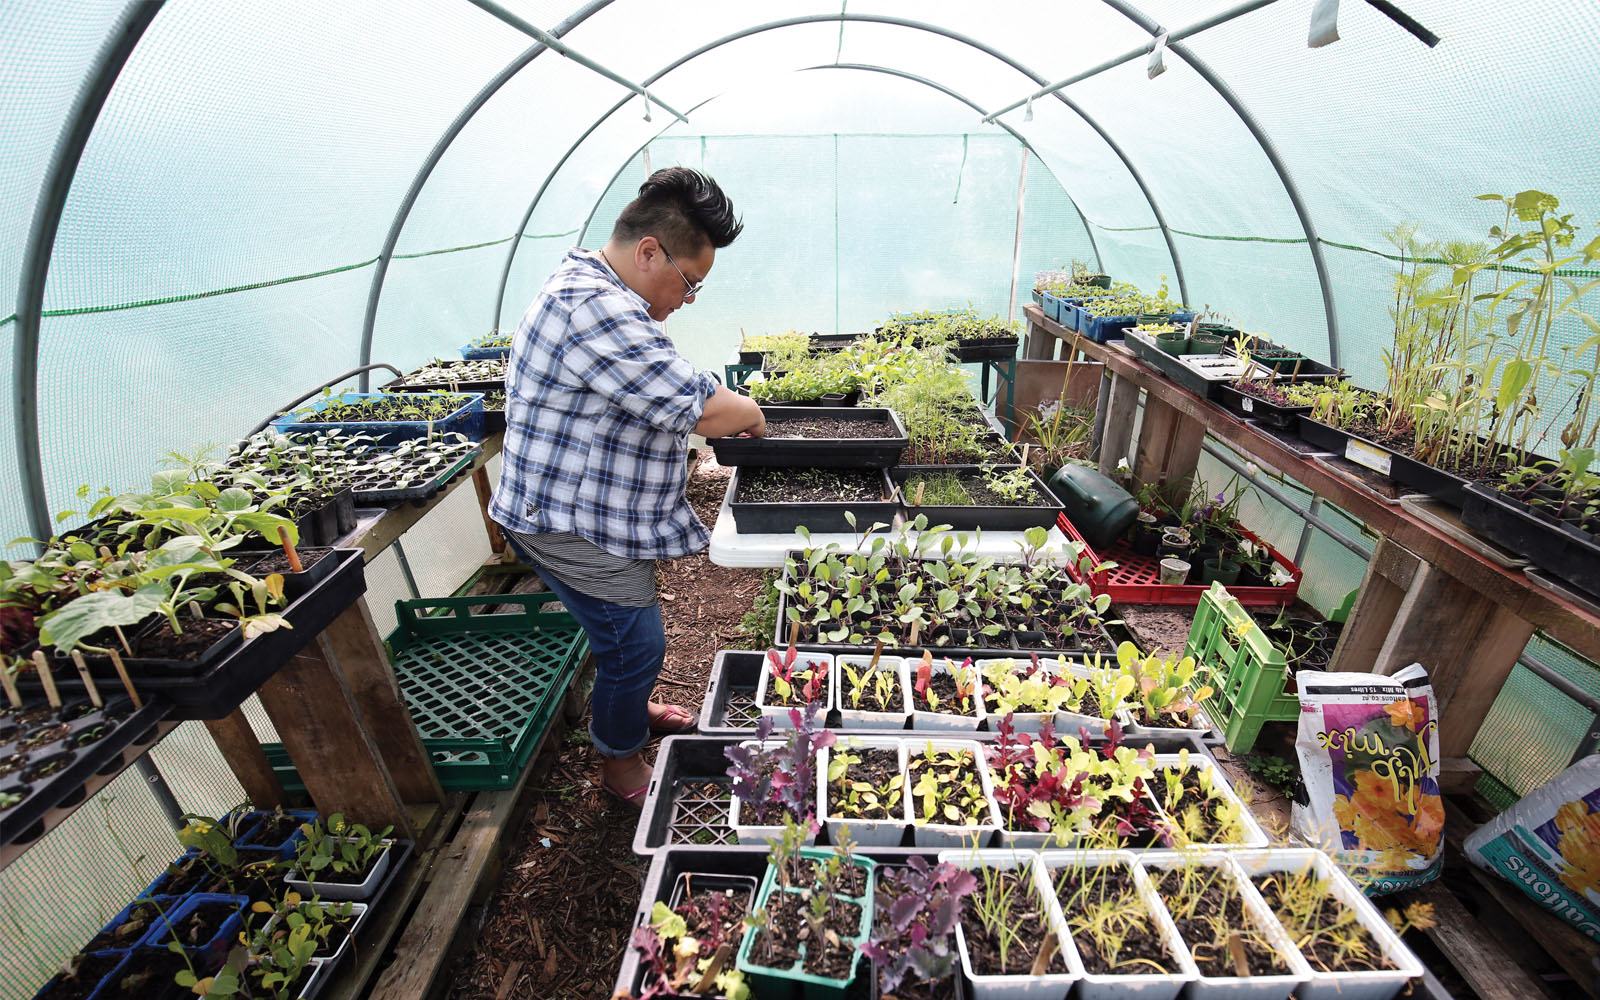 Seedlings grow in the Papatuanuku Kokiri Marae, a communal gathering place in Auckland, New Zealand, where people learn how to reduce waste and grow their own food. Auckland was recognized by C40 for its commitment to reducing landfill waste.